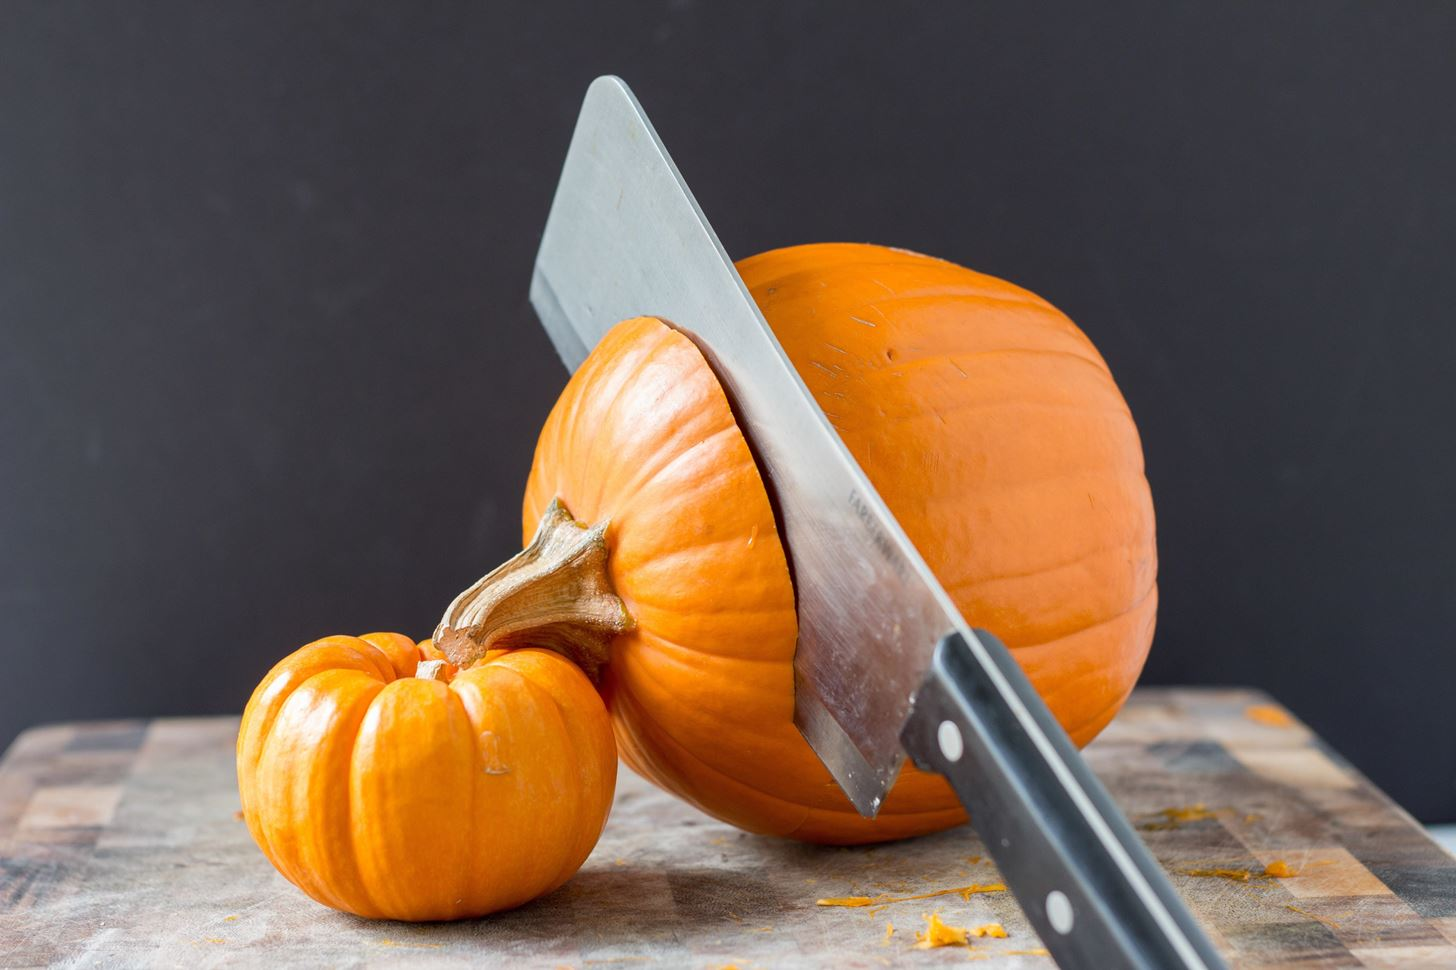 Skip the Canned Crap—Microwave Your Own Pumpkin Purée Instead